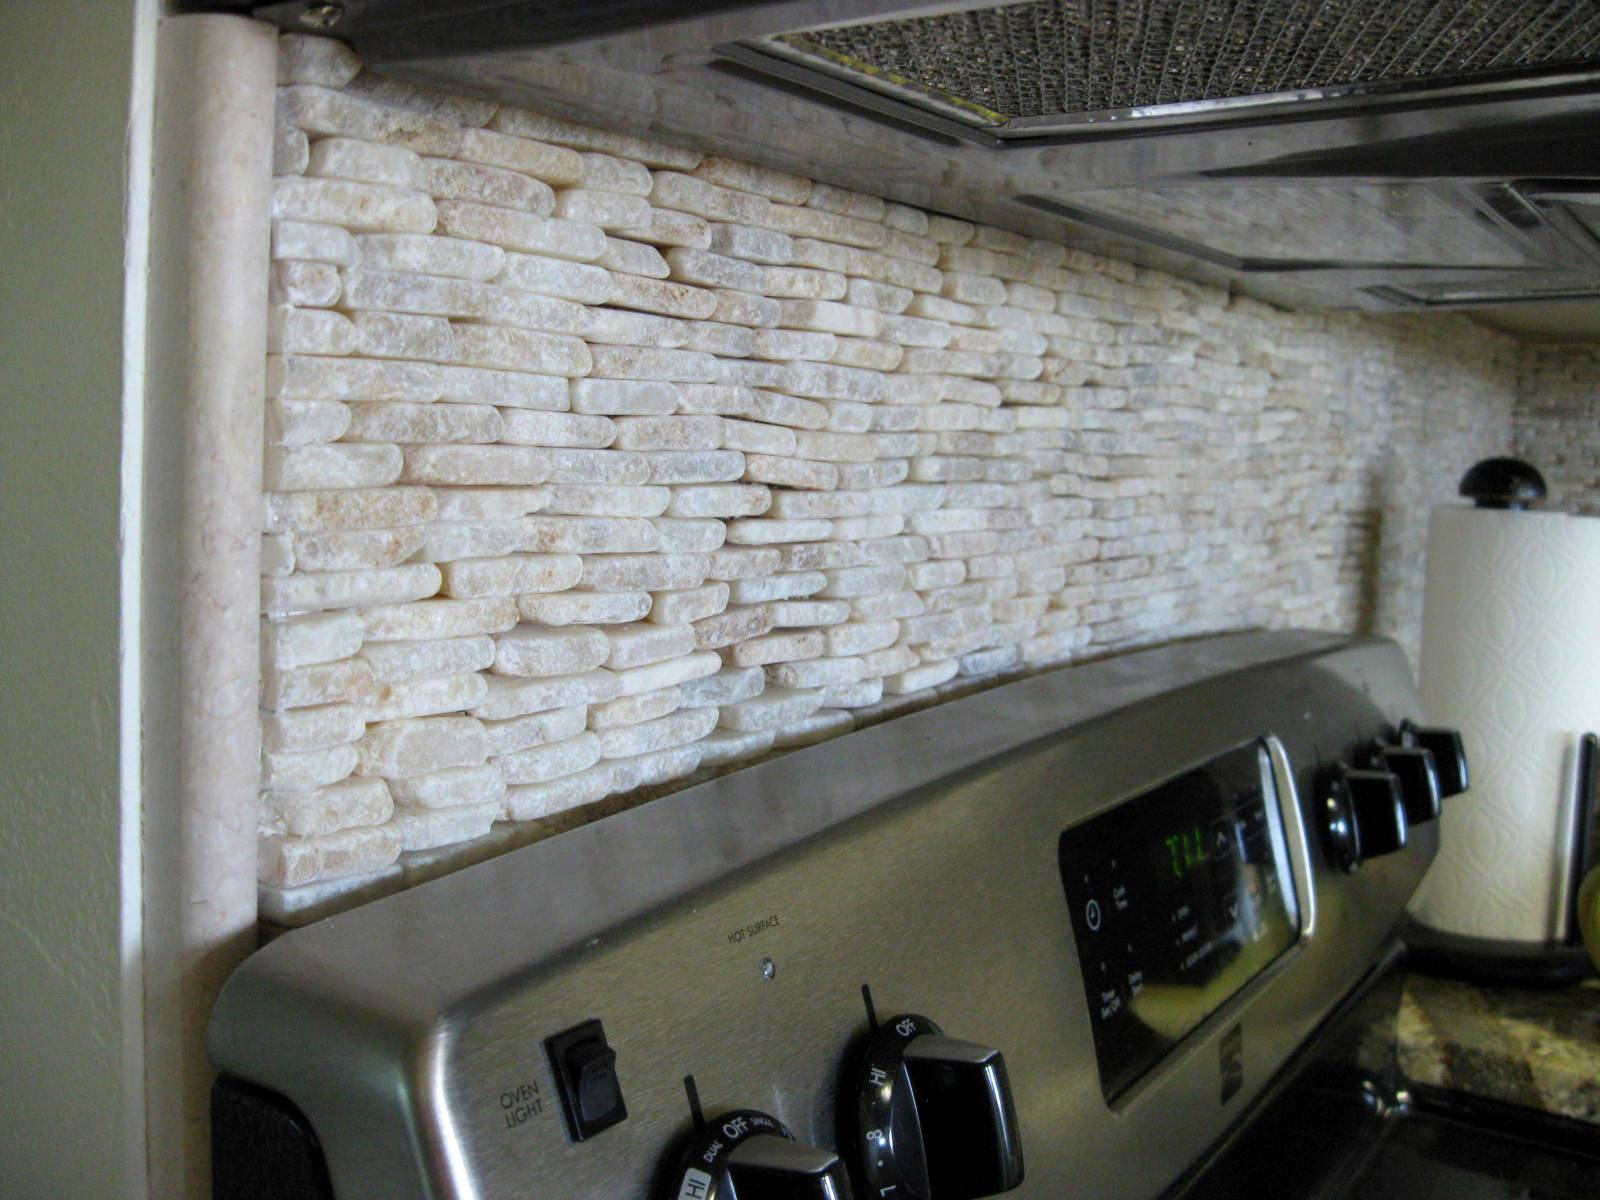 Modular Gorgeous Smart Surprising Light Stone Backsplash Tile Talling Glass throughout How To Install Stone Backsplash